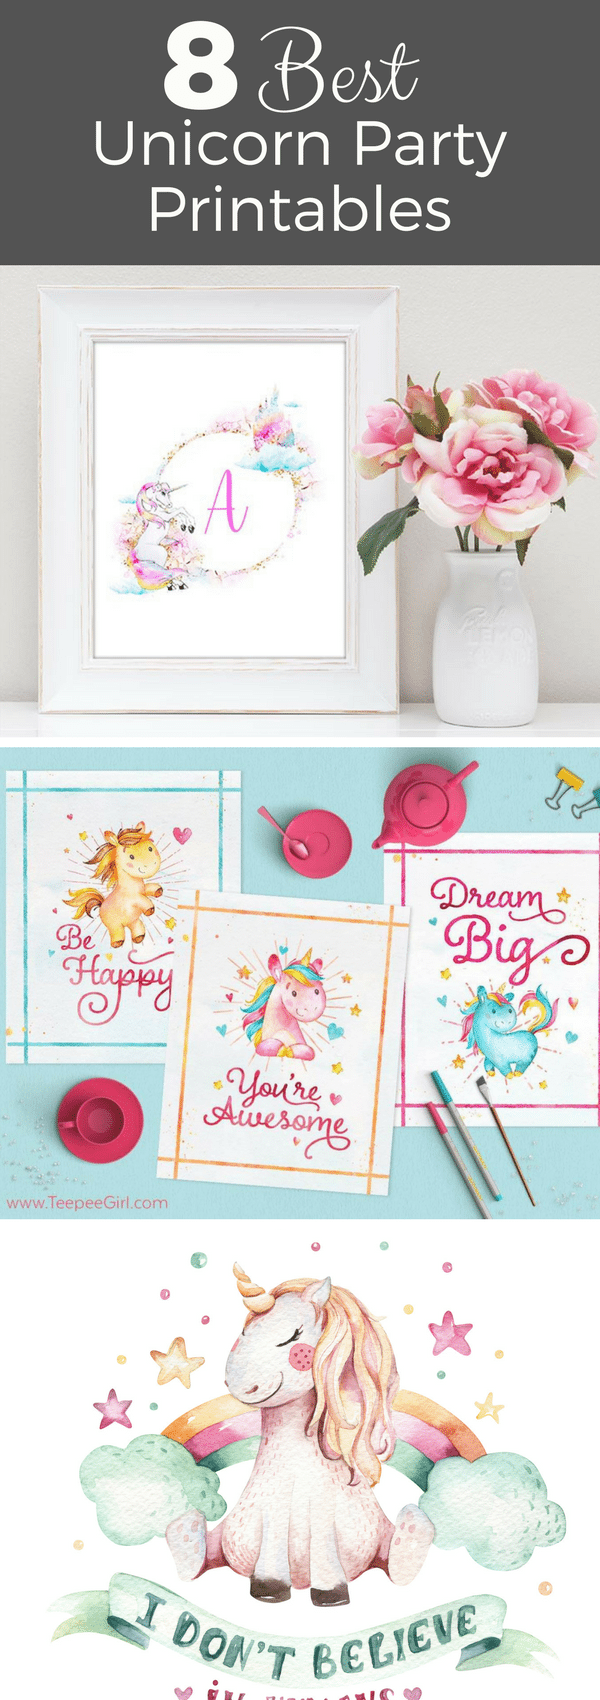 If you're planning a unicorn party, then these free printables are exactly what you need! From cupcake toppers to thank you tags, they are the best of Pinterest! #unicorn #unicornpartyideas printables